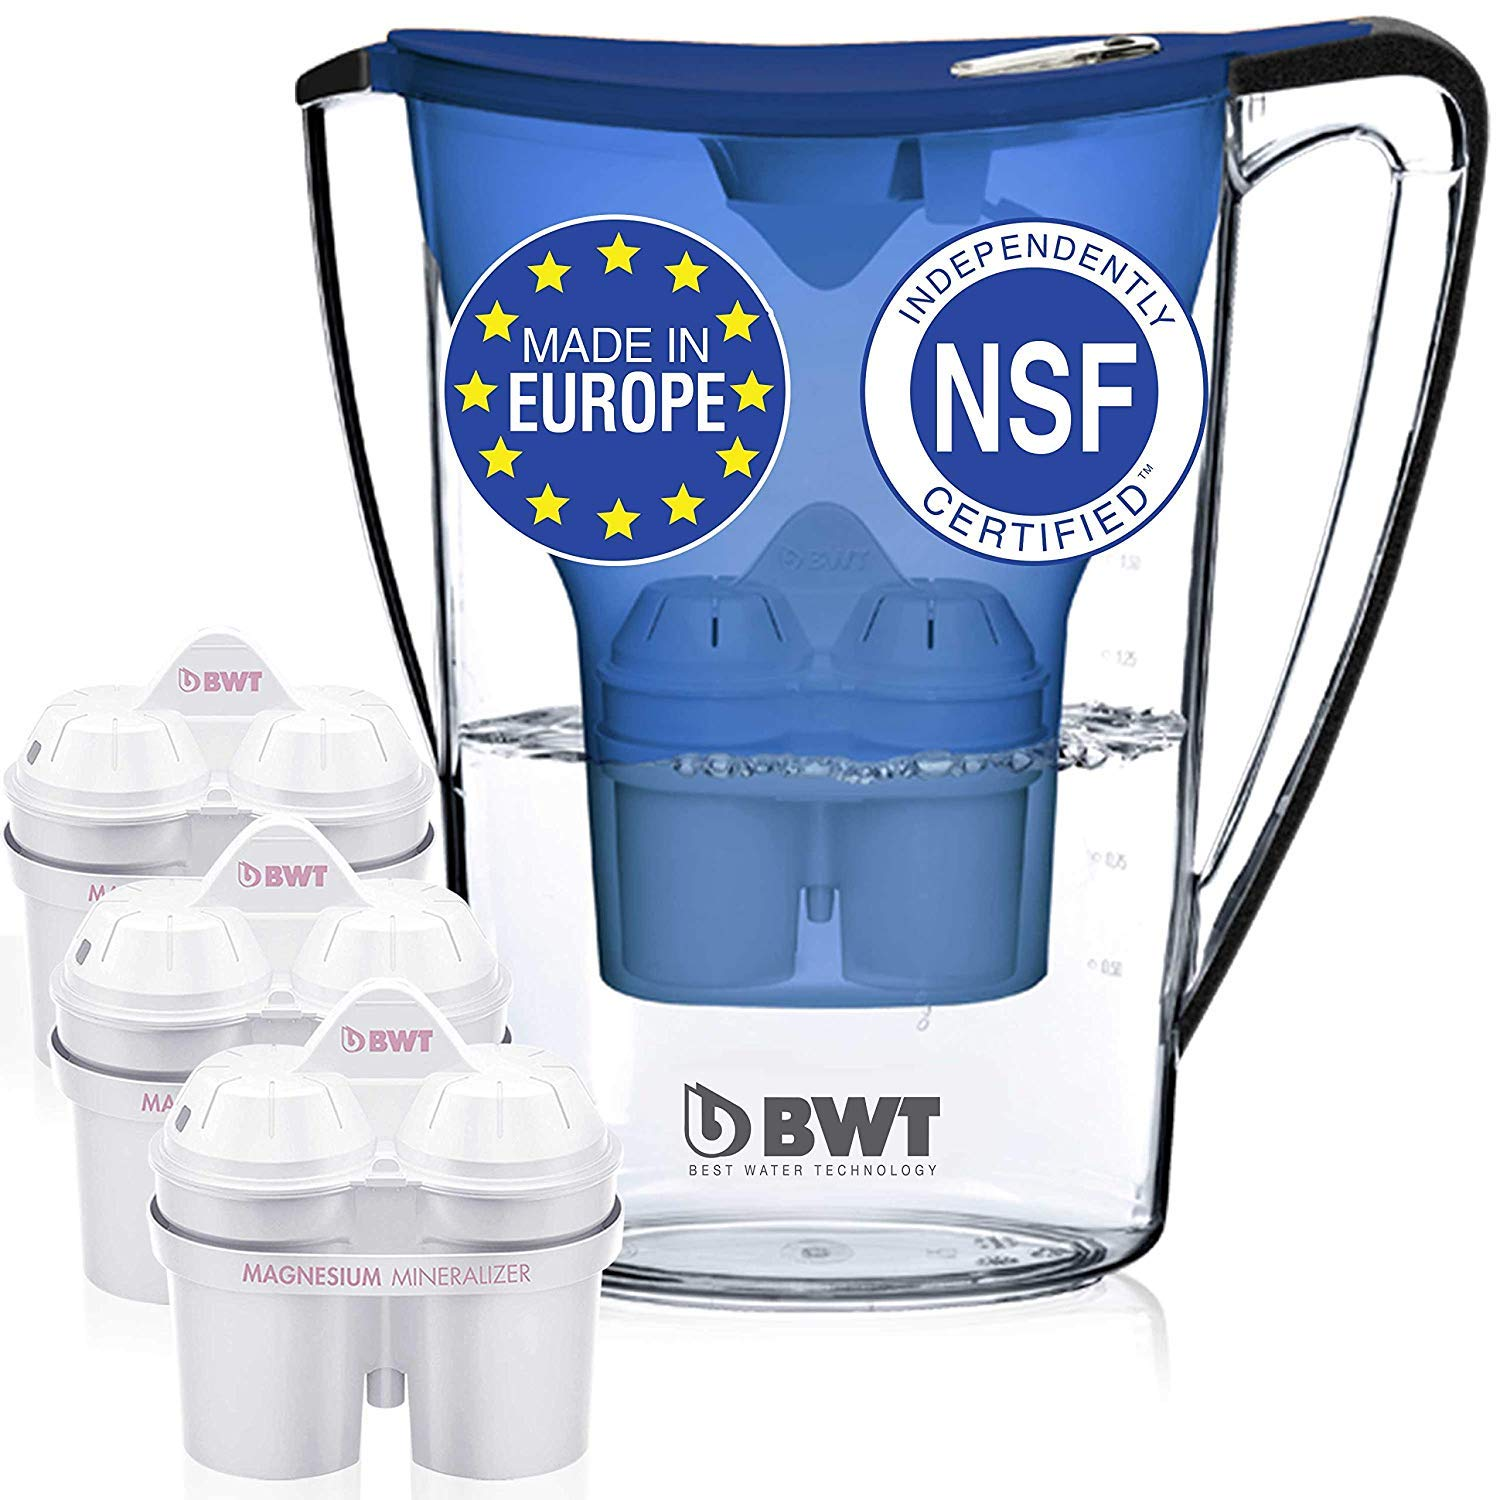 BWT Premium Water Filter Pitcher with 3 (60 Day) Filters Included, Award Winning Austrian Quality, Technology For Superior Filtration & Taste by BWT